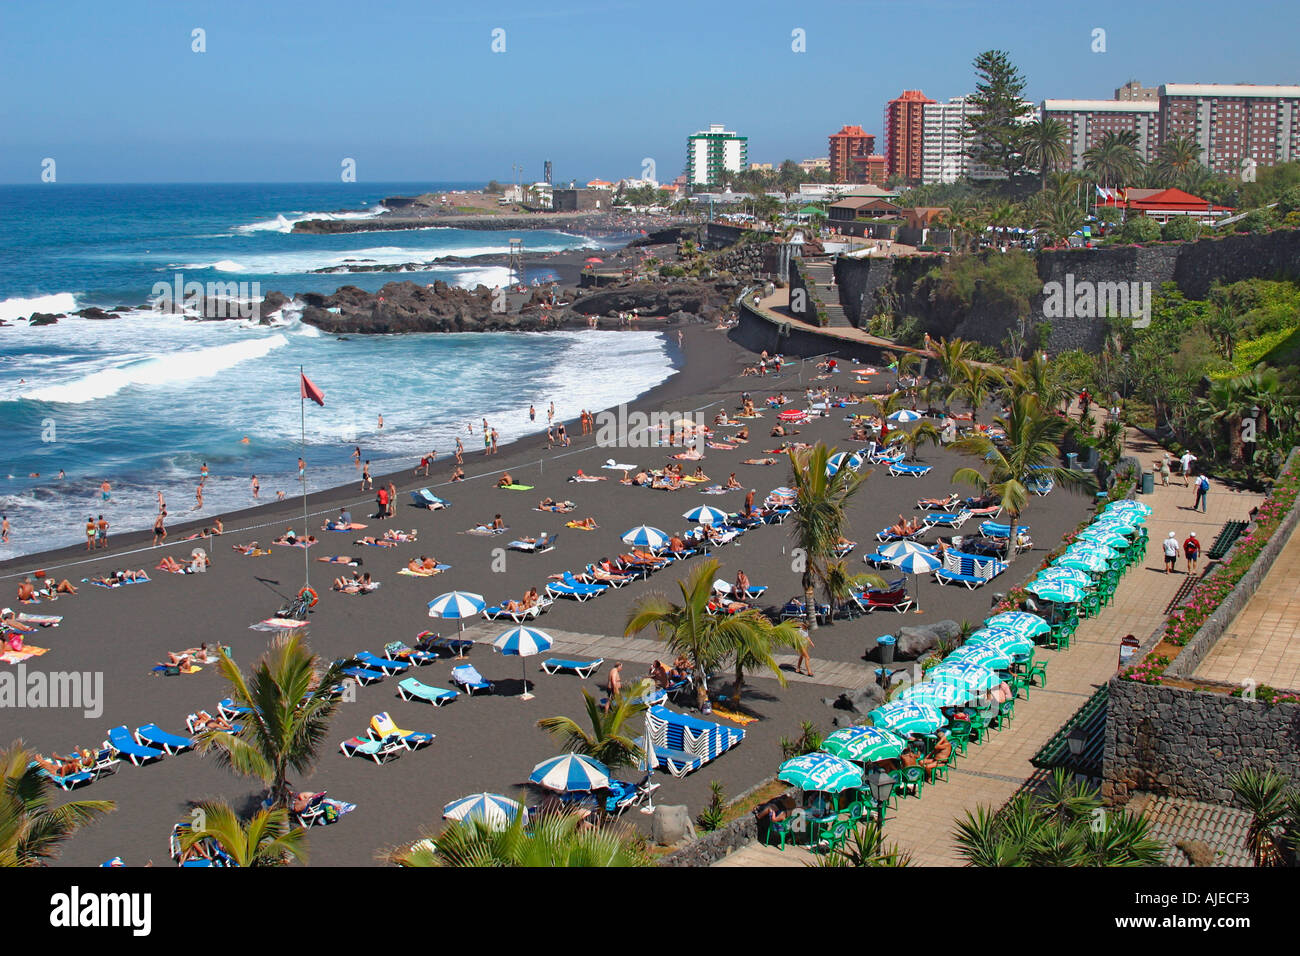 playa jardin puerto de la cruz tenerife canary islands